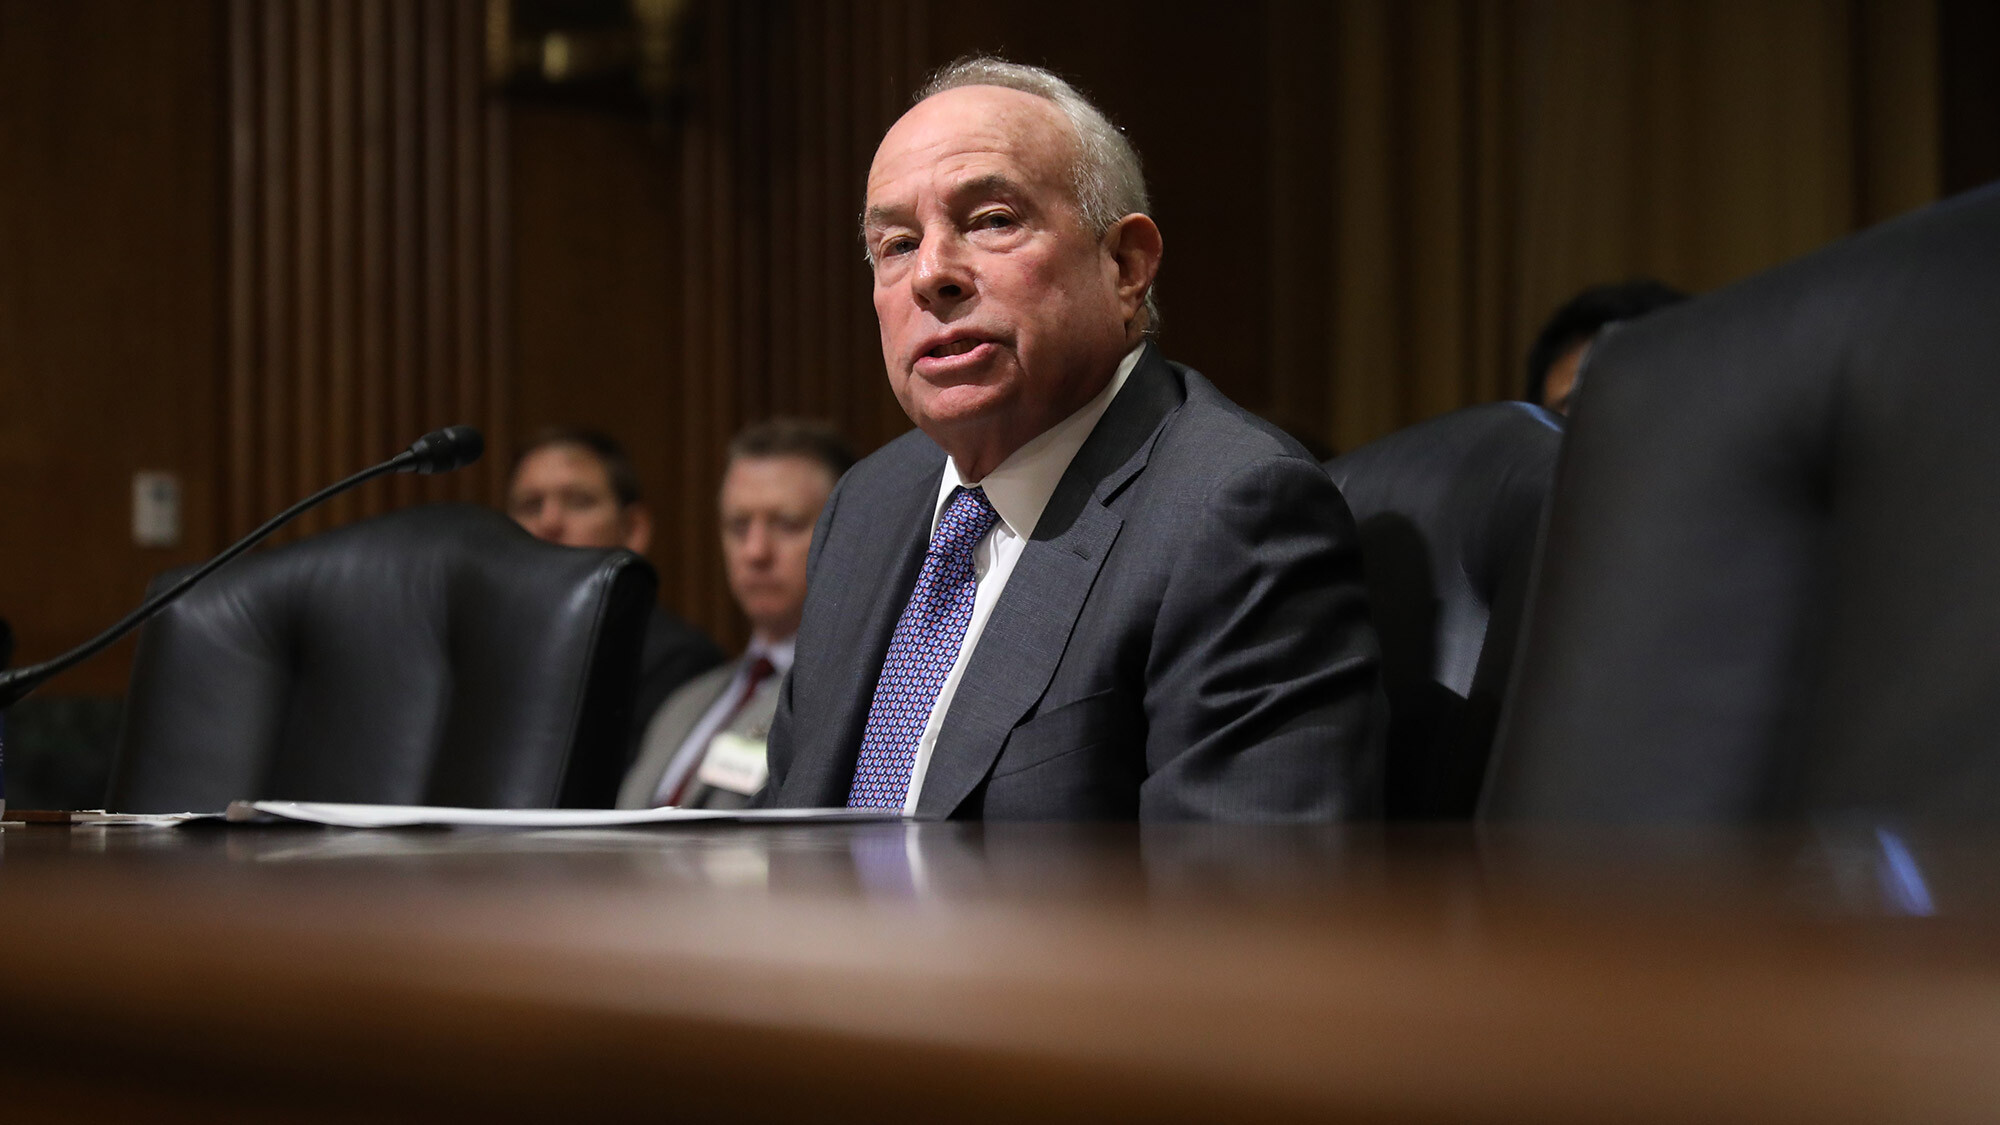 Biden administration took steps to 'off-board' fired Social Security chief, administration official says